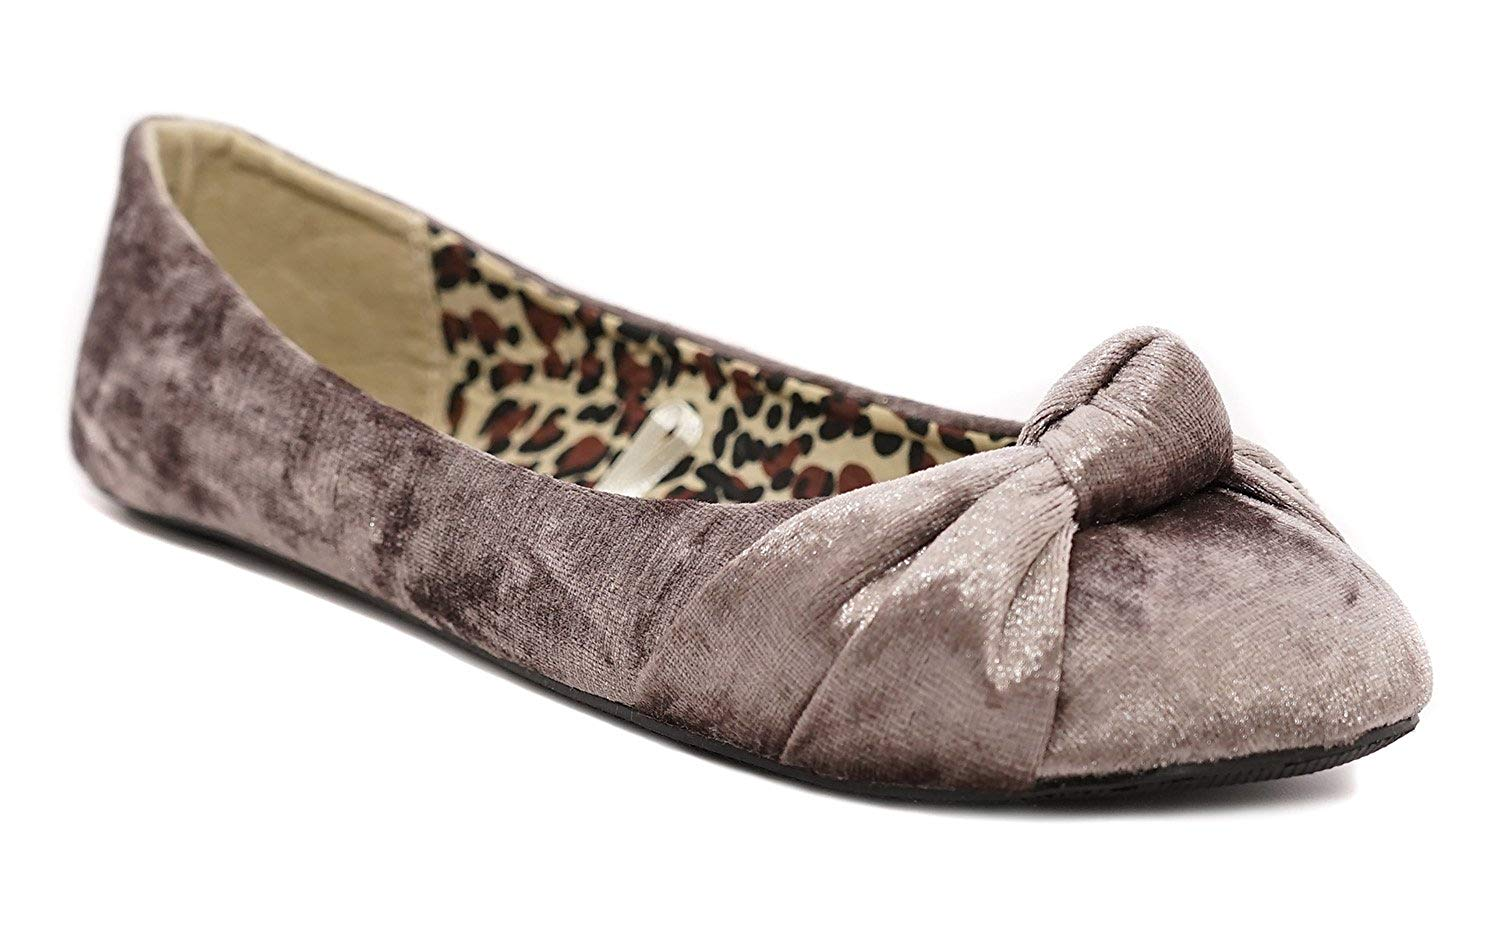 3f0b4714b66f Charles Albert Women s Knotted Front Canvas Round Toe Ballet Flats